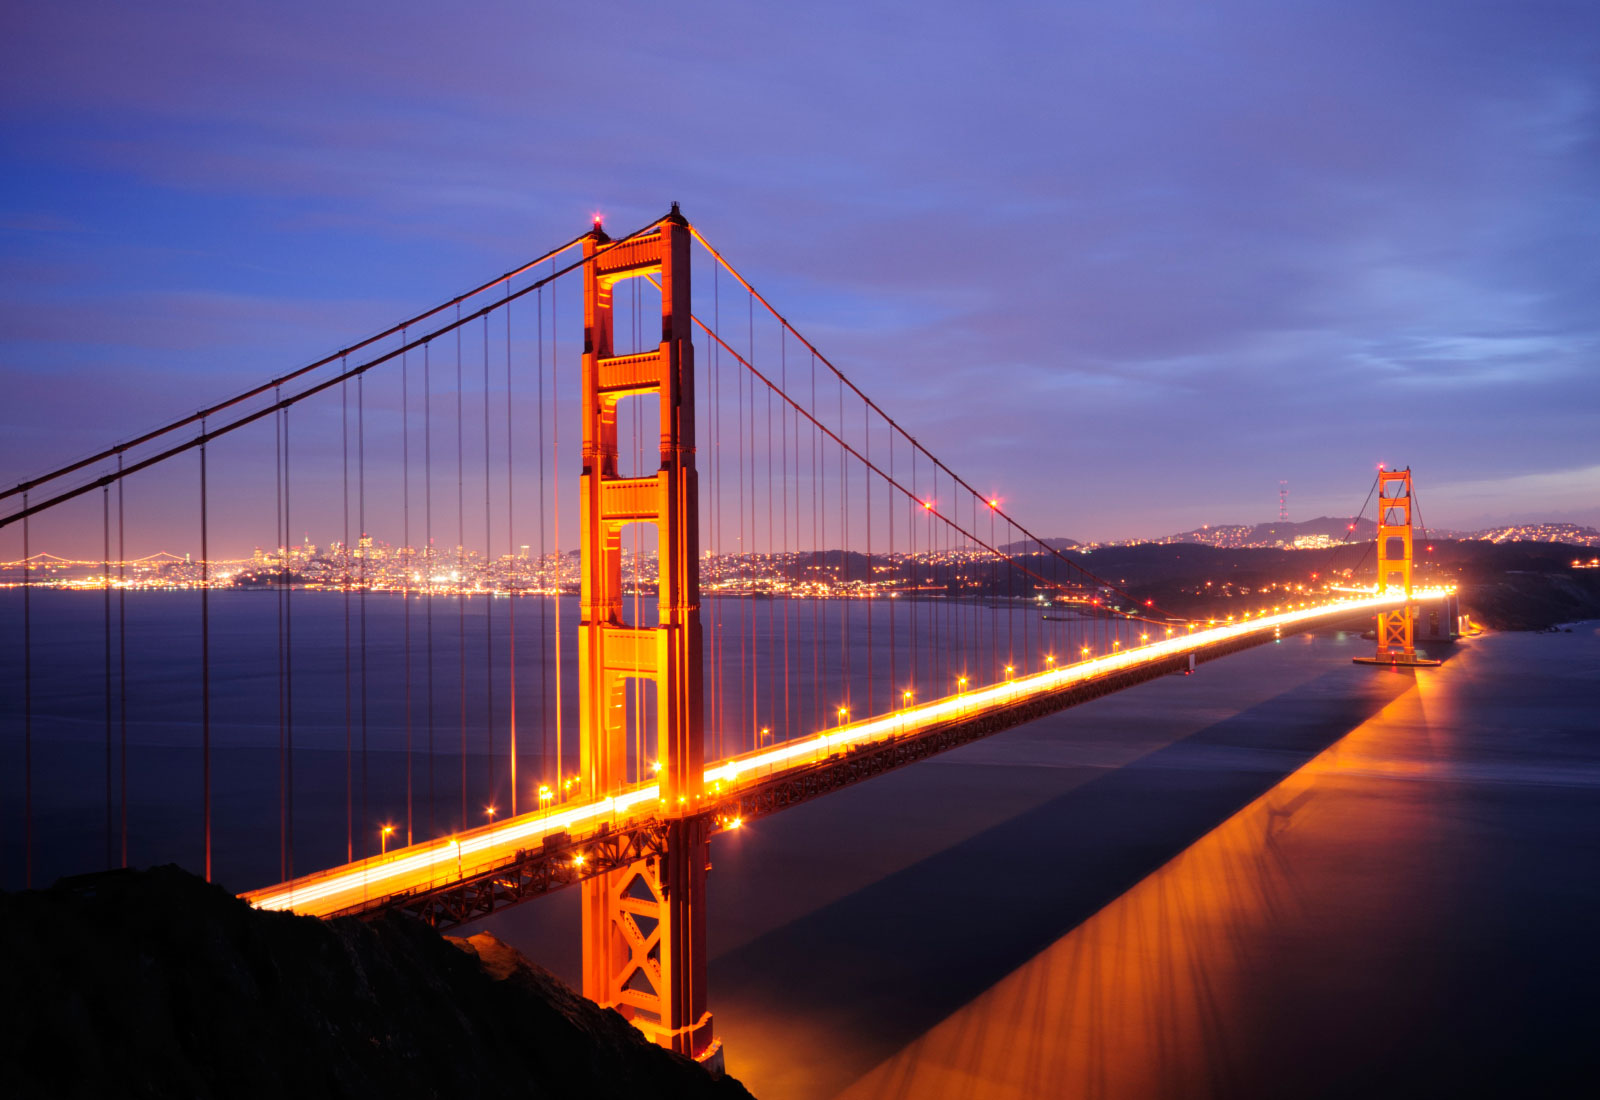 Attractions of San Francisco